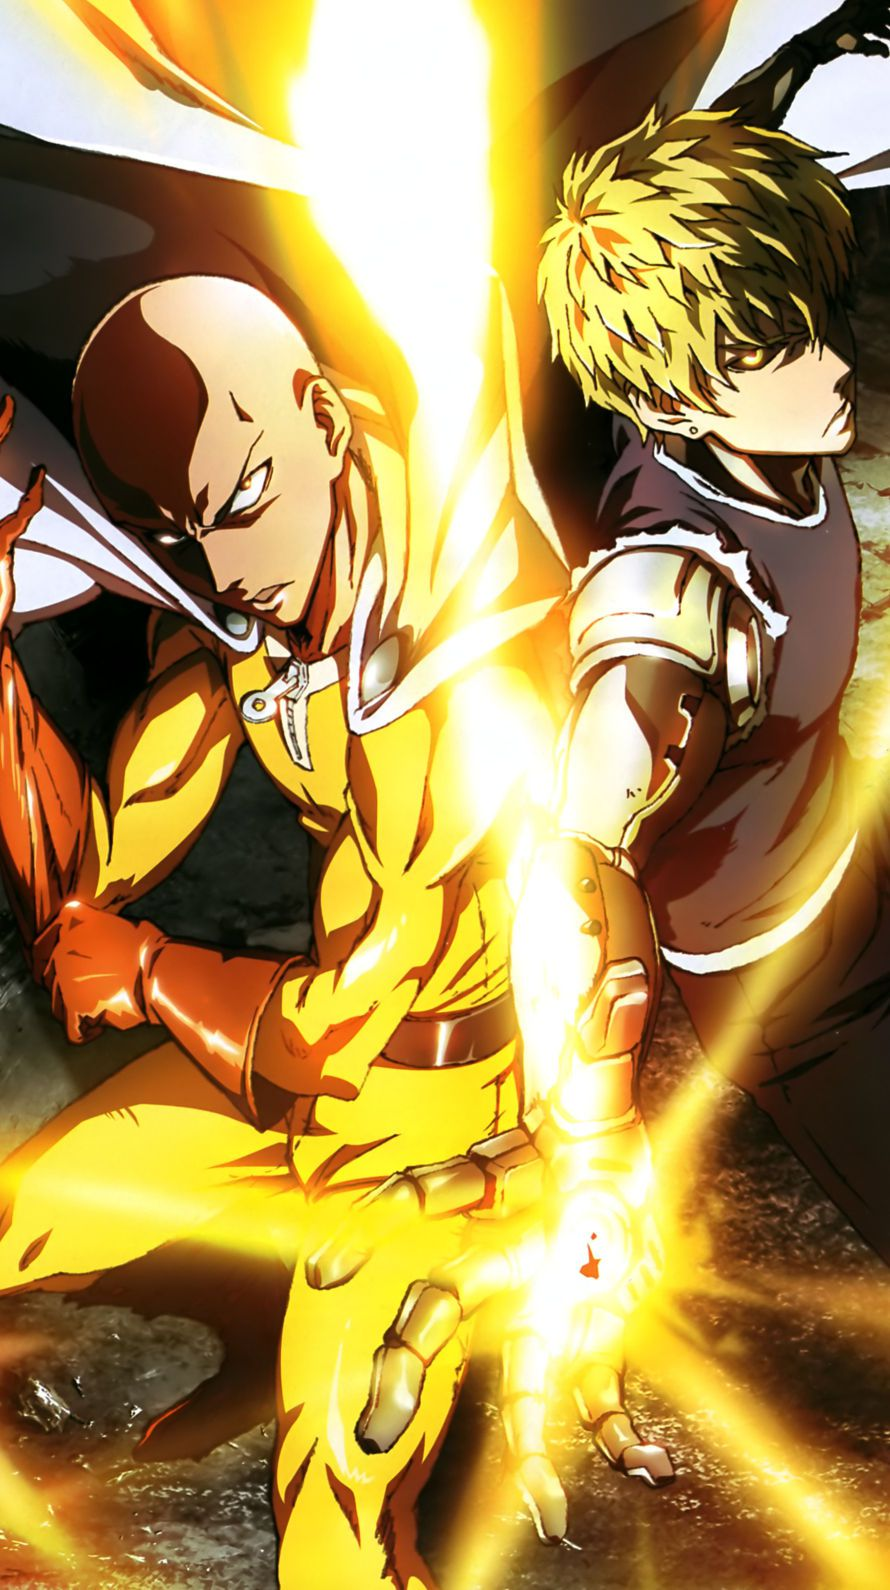 27734_Onepunchman_iPhone